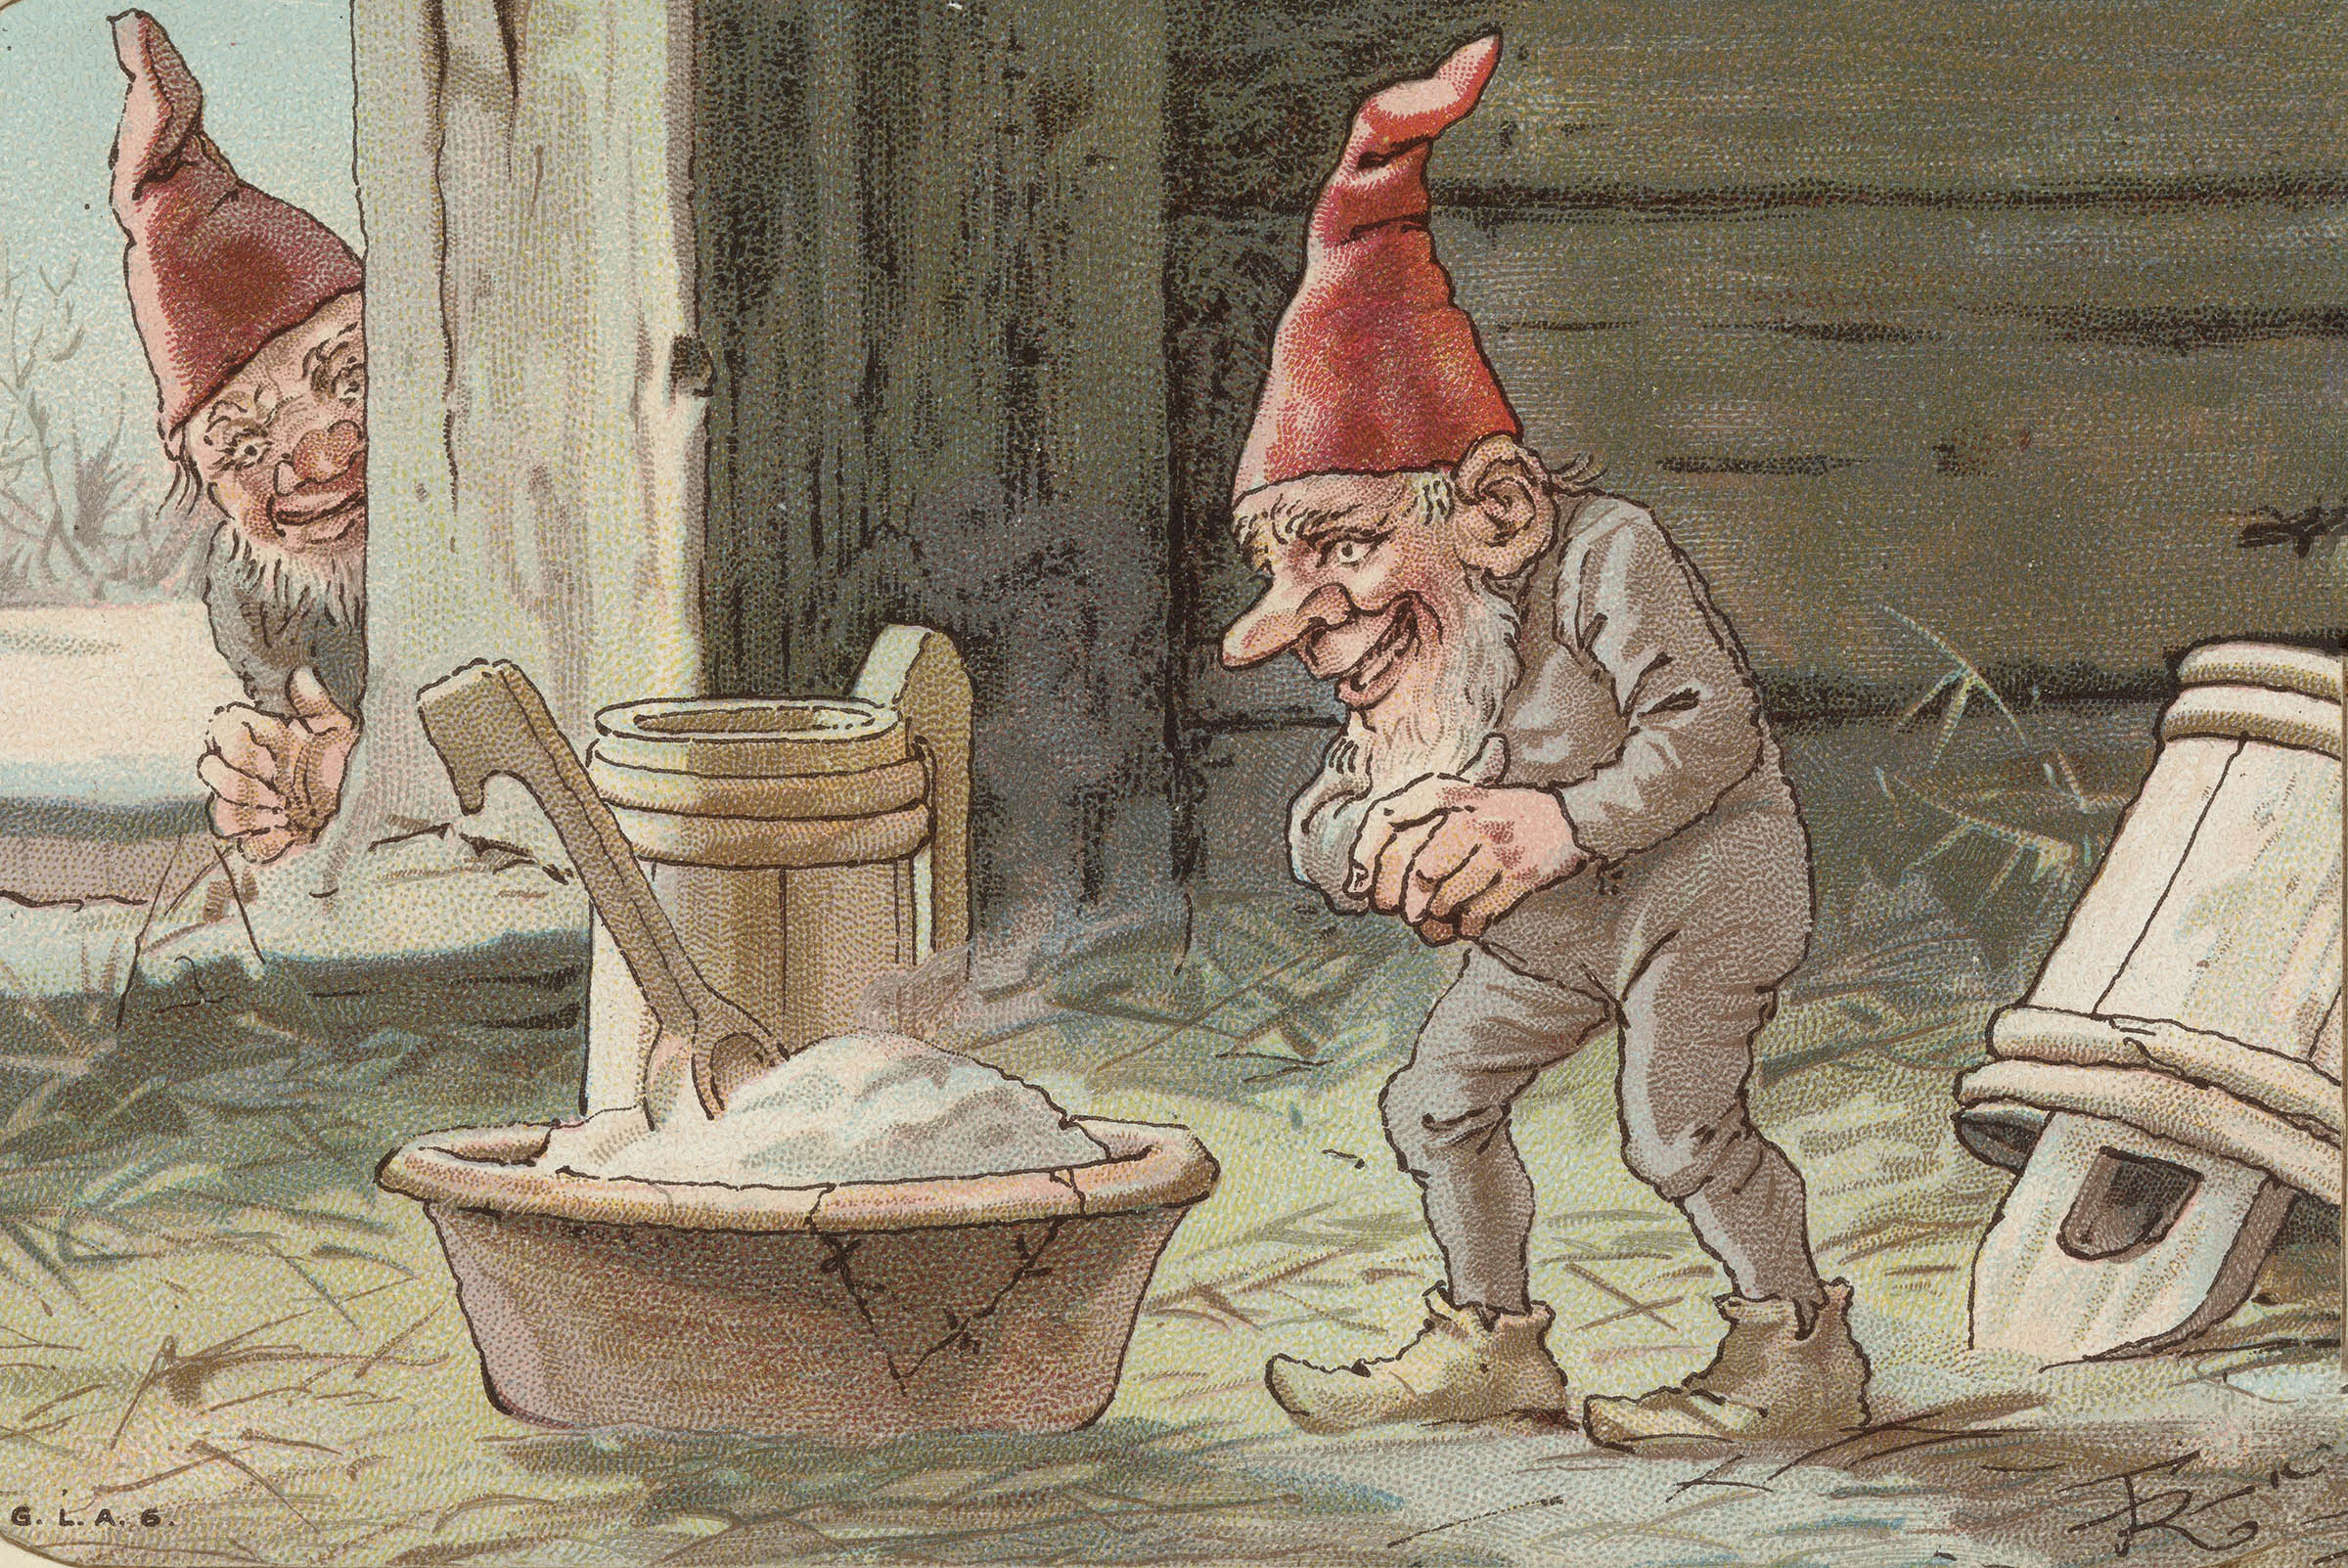 A Norwegian nisse is ready for his Christmas porridge - skjemat - in the barn. Hopefully, he is willing to share. | Artwork: G.L.A.S. cc pdm.